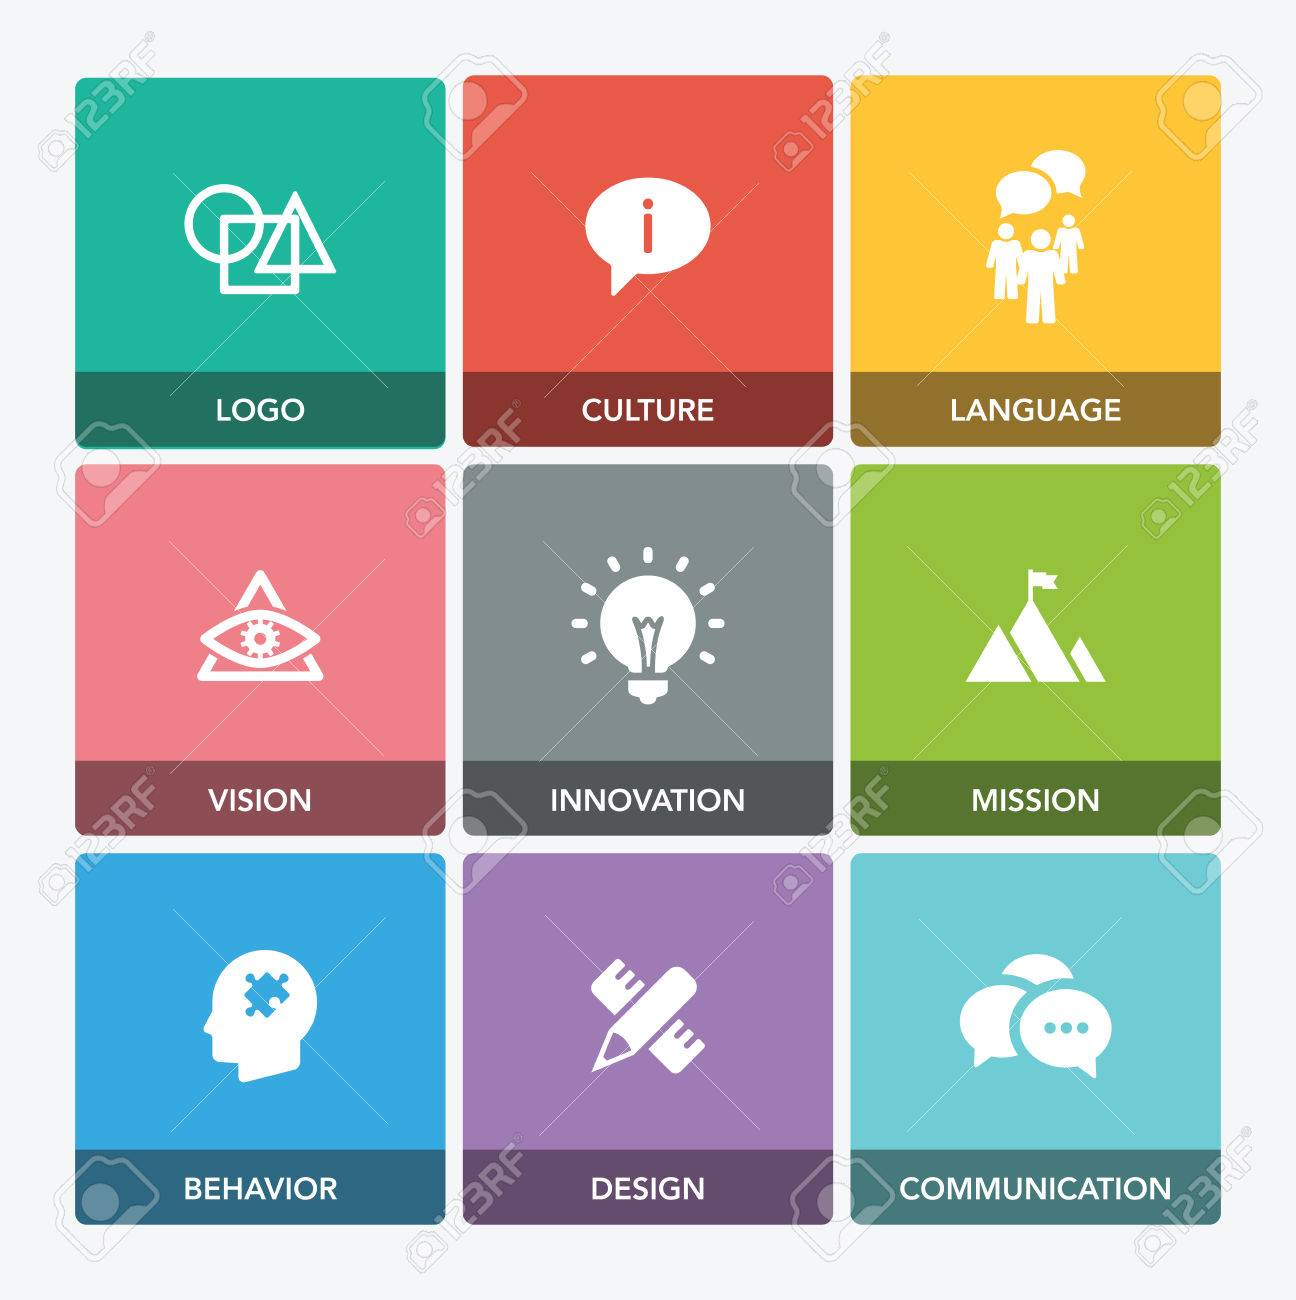 corporate identity icon set royalty free cliparts vectors and stock illustration image 73635256 123rf com